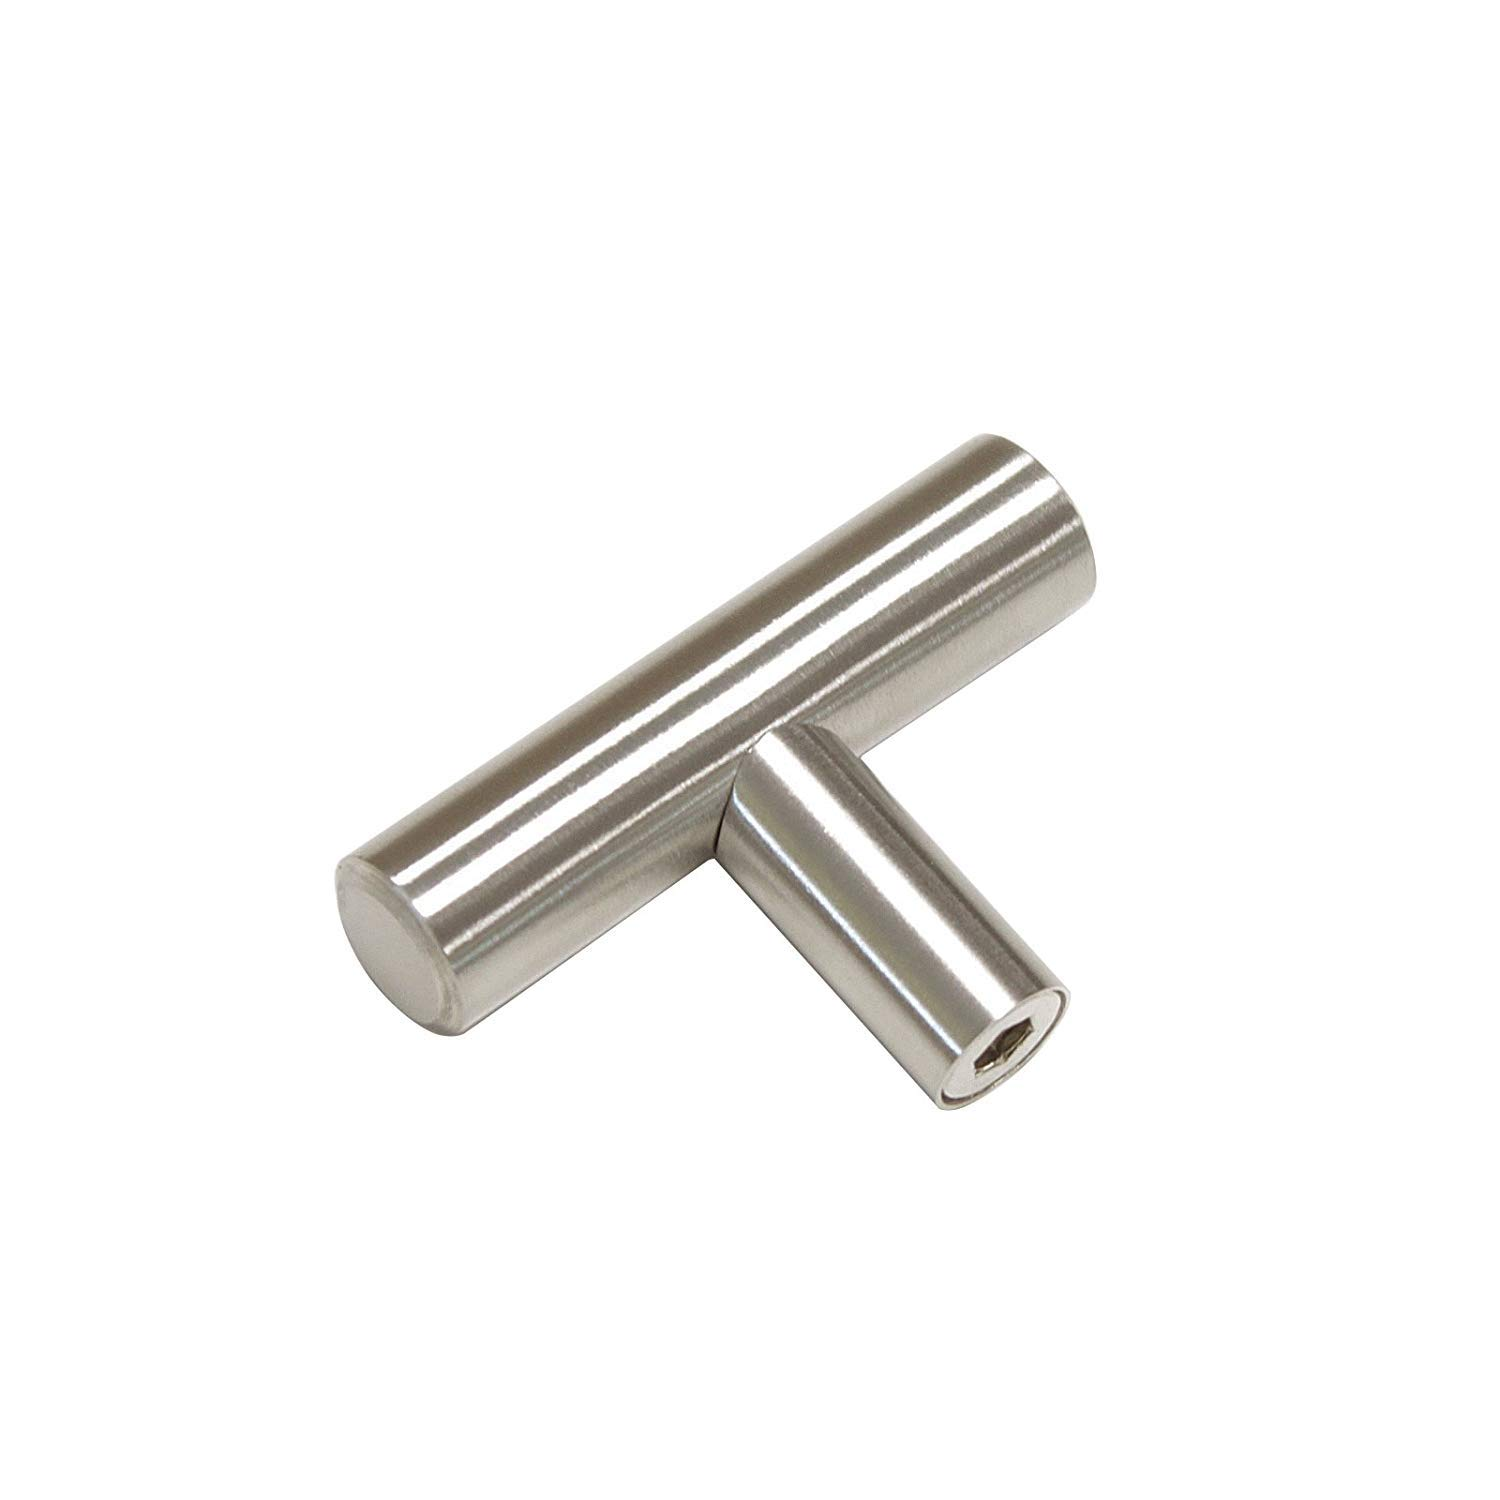 HD201SN Nickel Knobs for Dresser Drawers Metal Drawer Pulls and Knobs T Cabinet Knobs Cabinets Knobs homdiy Kitchen Cabinet Knobs Brushed Nickel 5 Pack Modern Cabinet Hardware Knobs